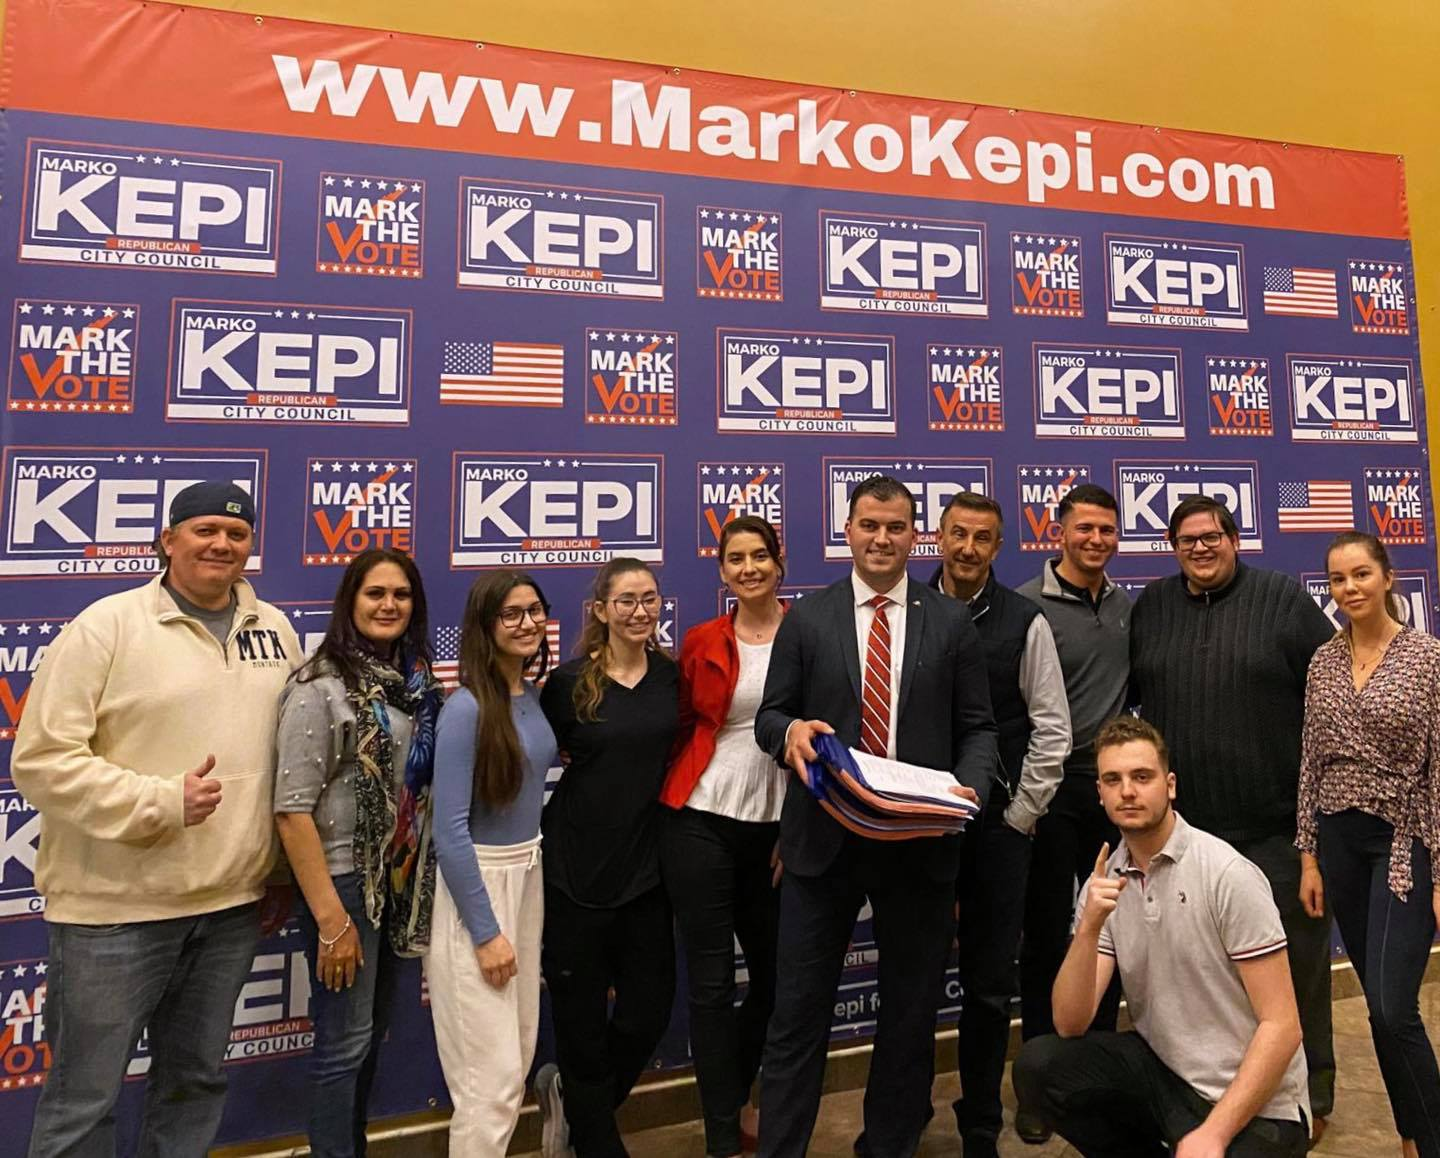 UNITED STATES MARINE MARKO KEPI OFFICIALLY ANNOUNCES CANDIDACY FOR STATEN ISLAND CITY COUNCIL SEAT